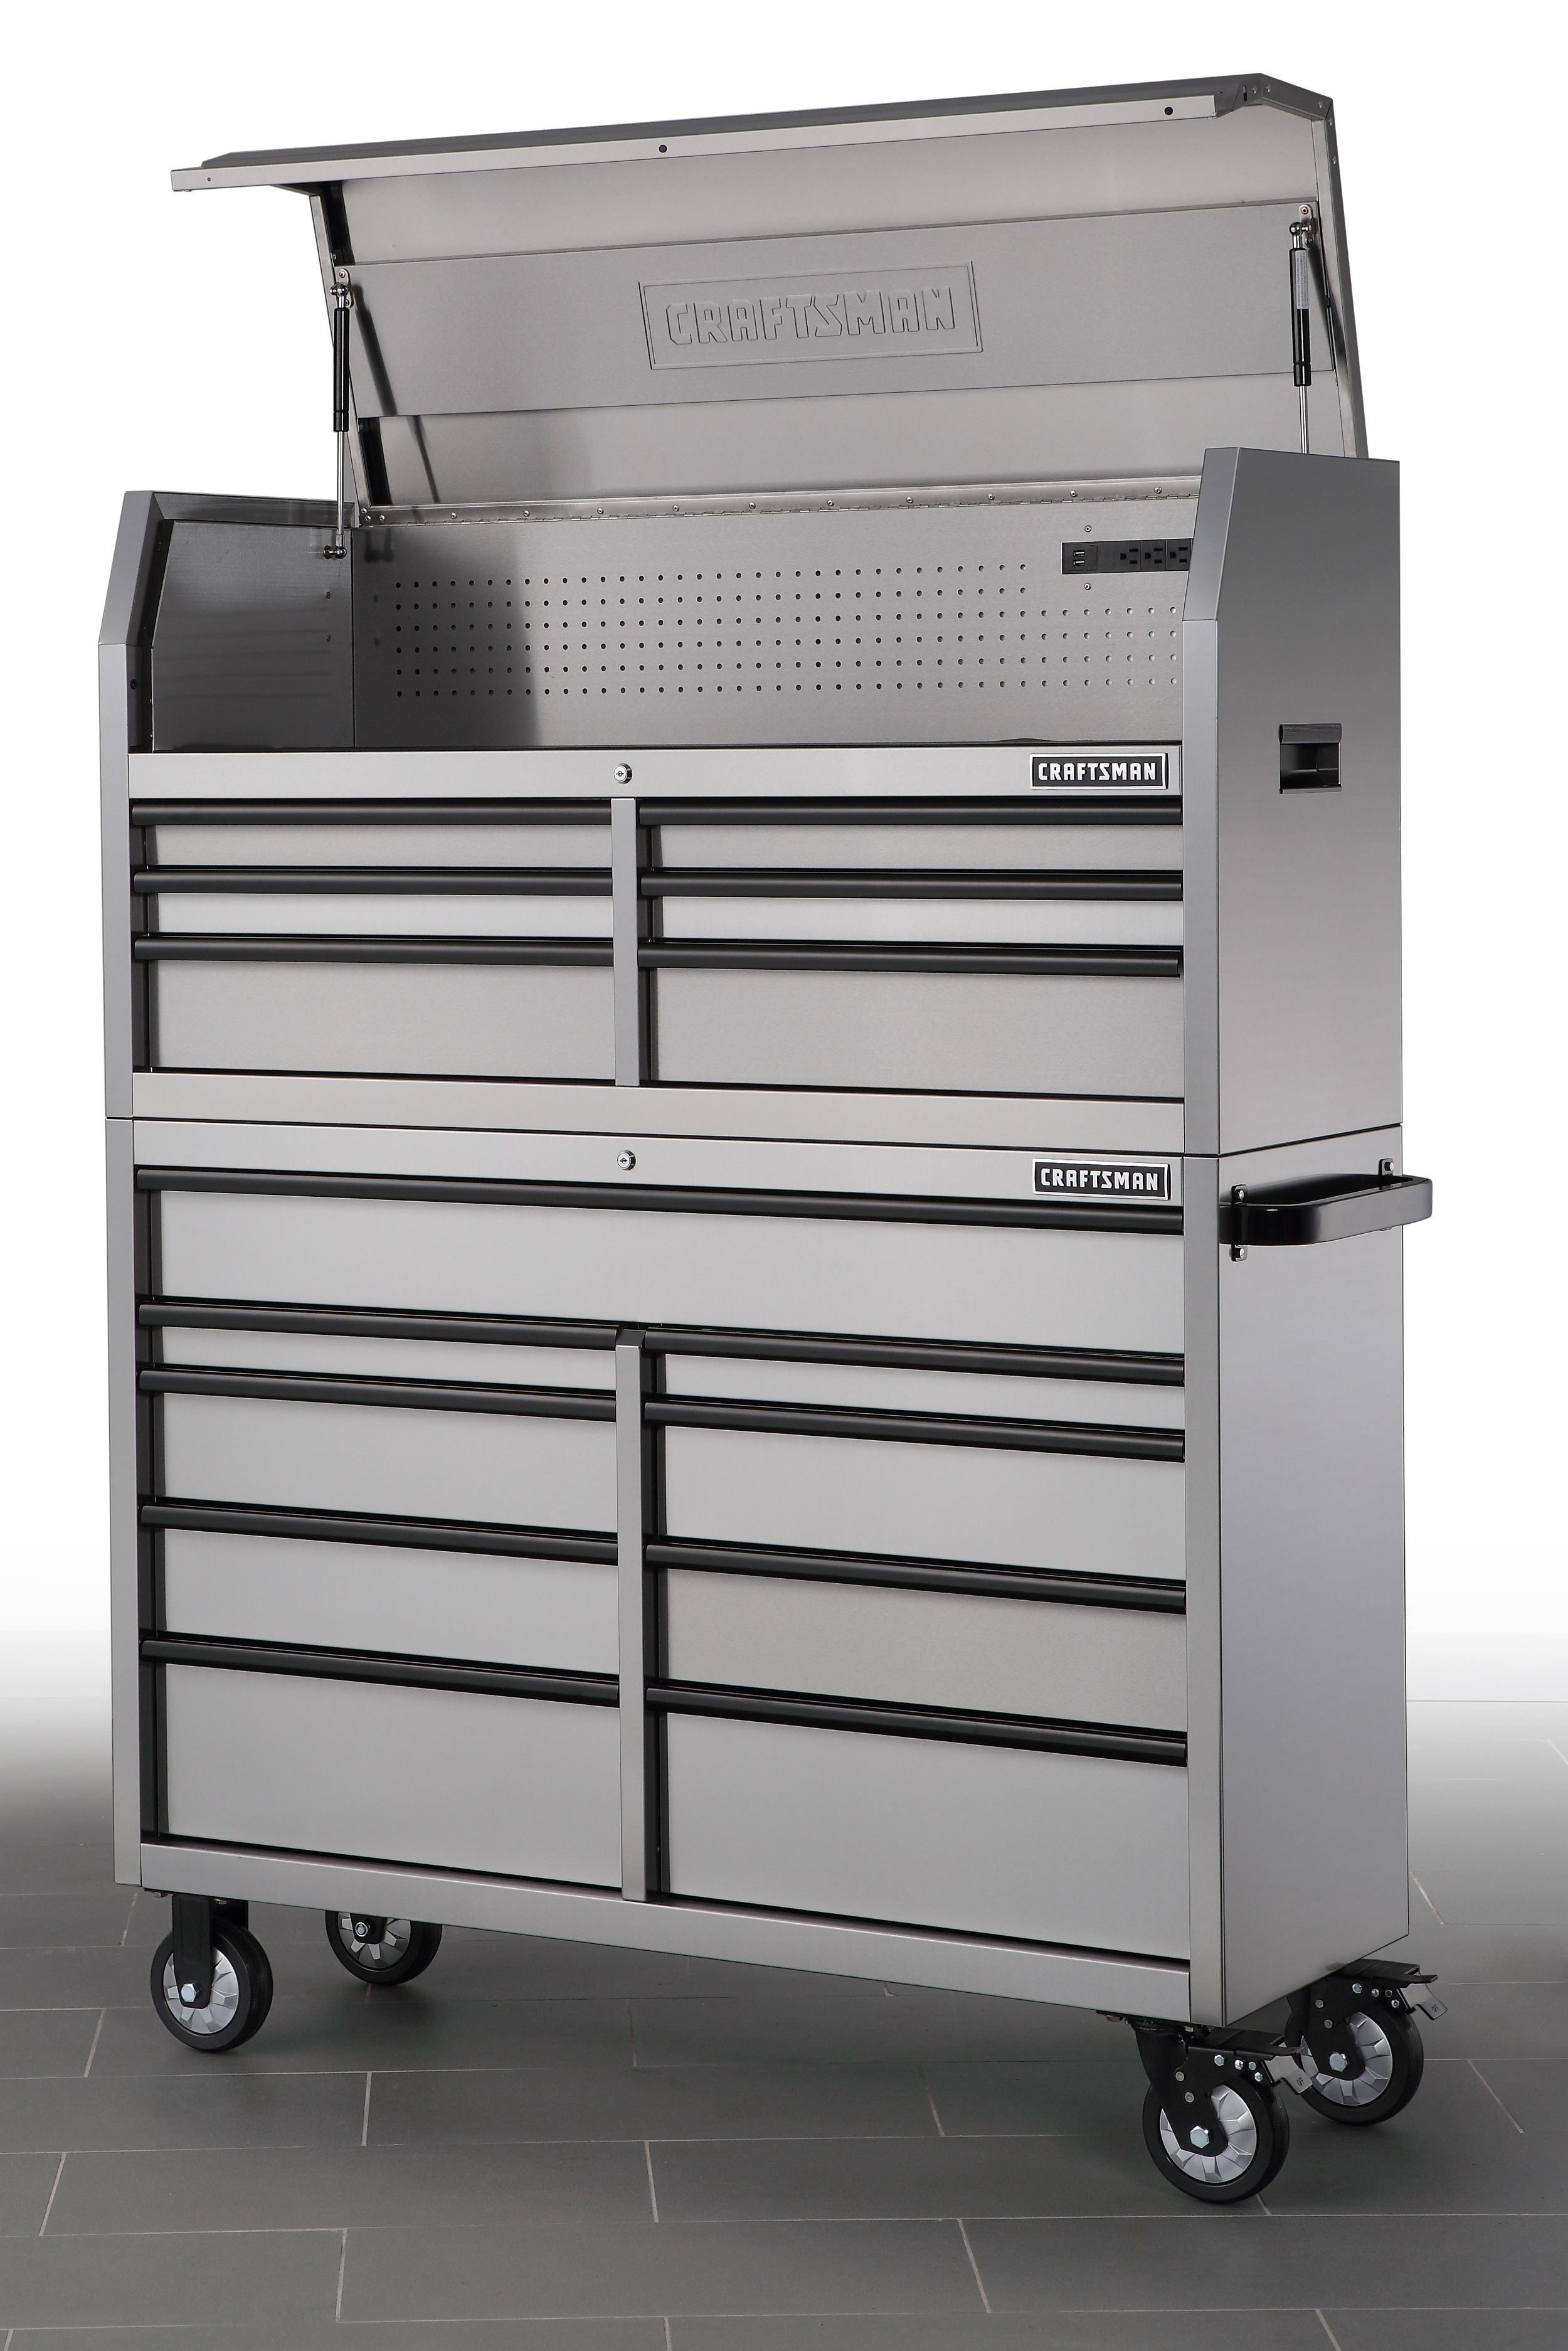 15-Drawer Heavy Duty Soft-Close Drawers Tool Storage Combo in Stainless Steel